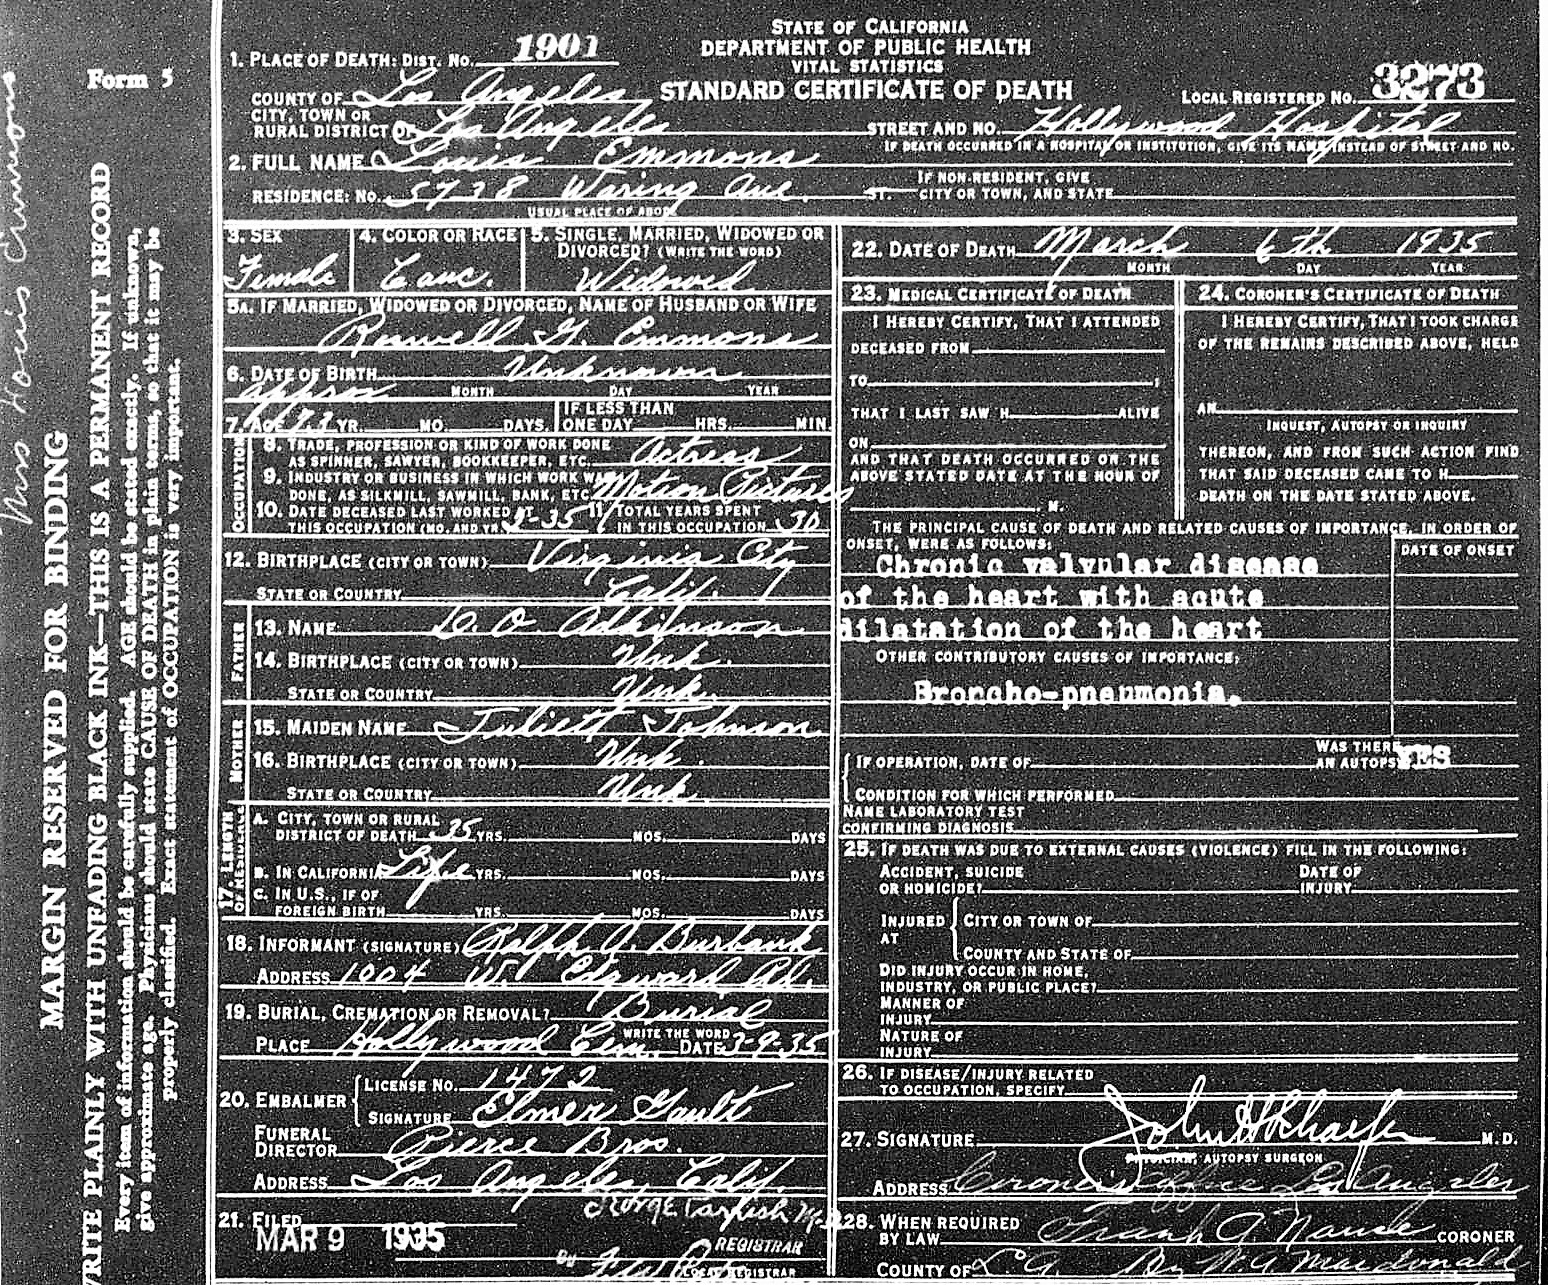 Hollywood history hollywoodland louise emmons death certificate her mother is listed as juliet johnson however she was her maternal grandmother her mother was mary johnson 1betcityfo Images